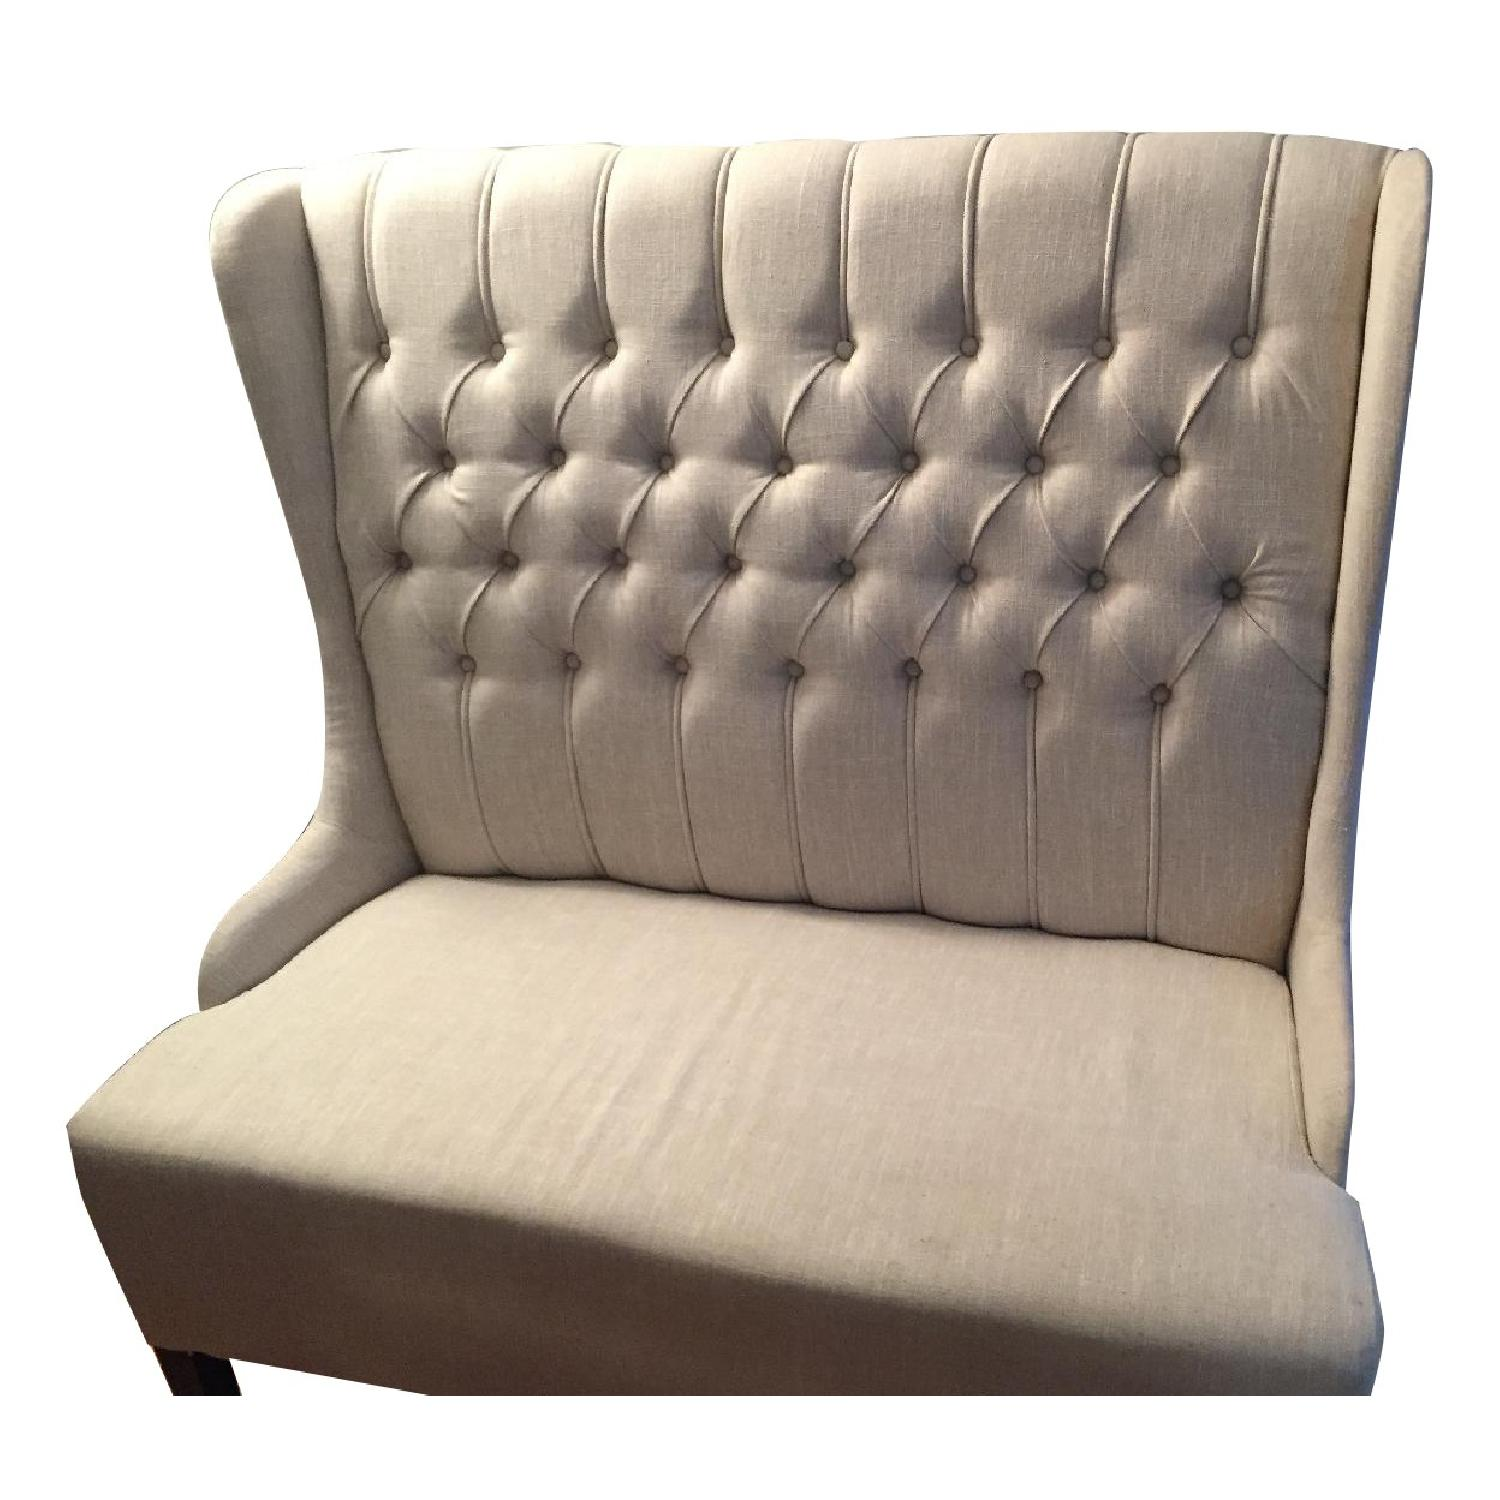 Tufted Banquette - image-0